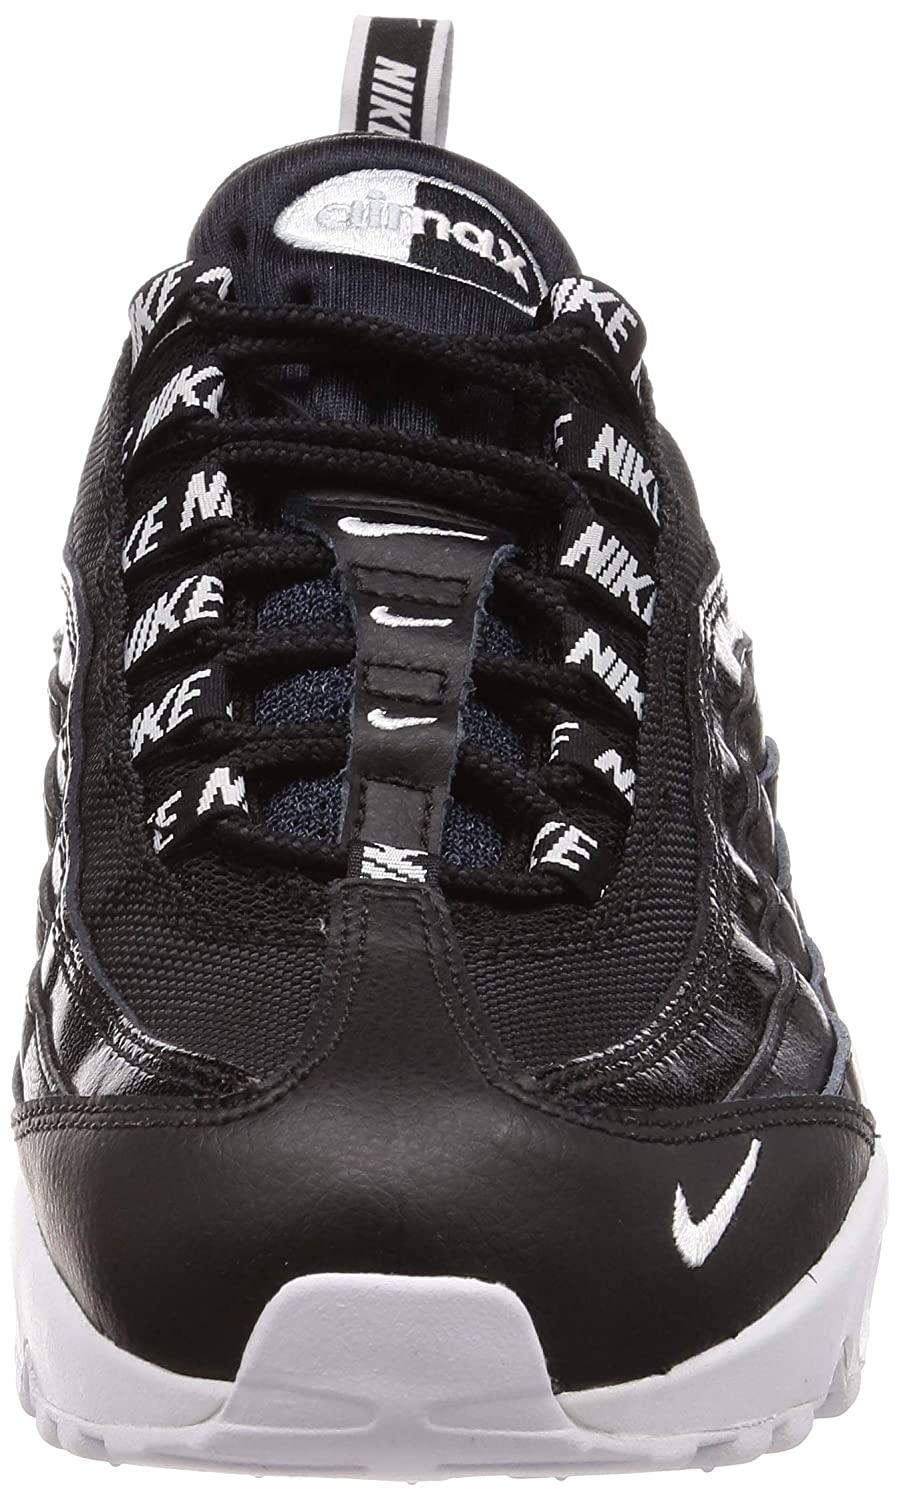 Nike Air Max 95 Premium 538416020 Color: Black Size: 7.5